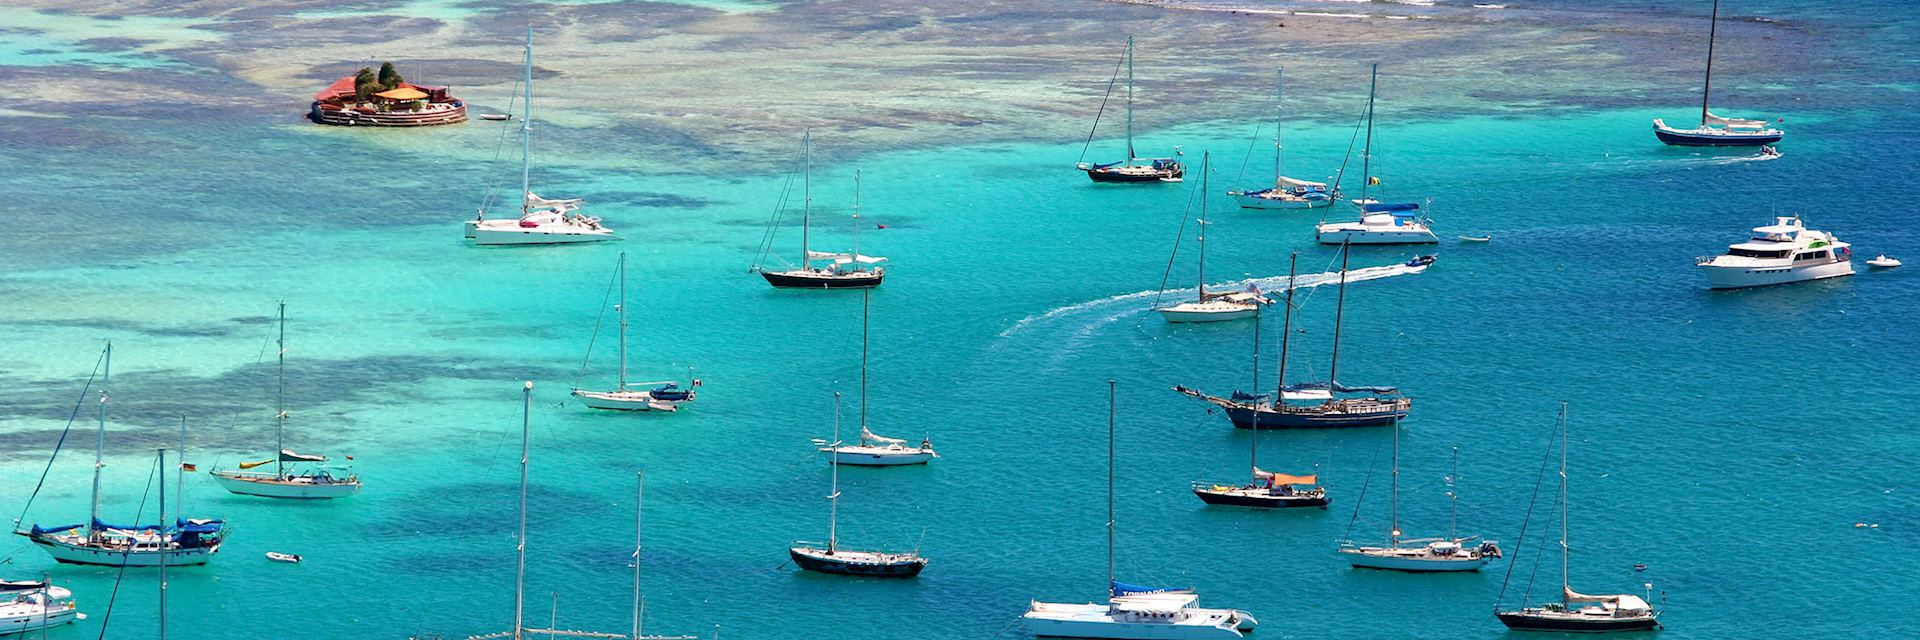 Sailing in the Caribbean, Grenada